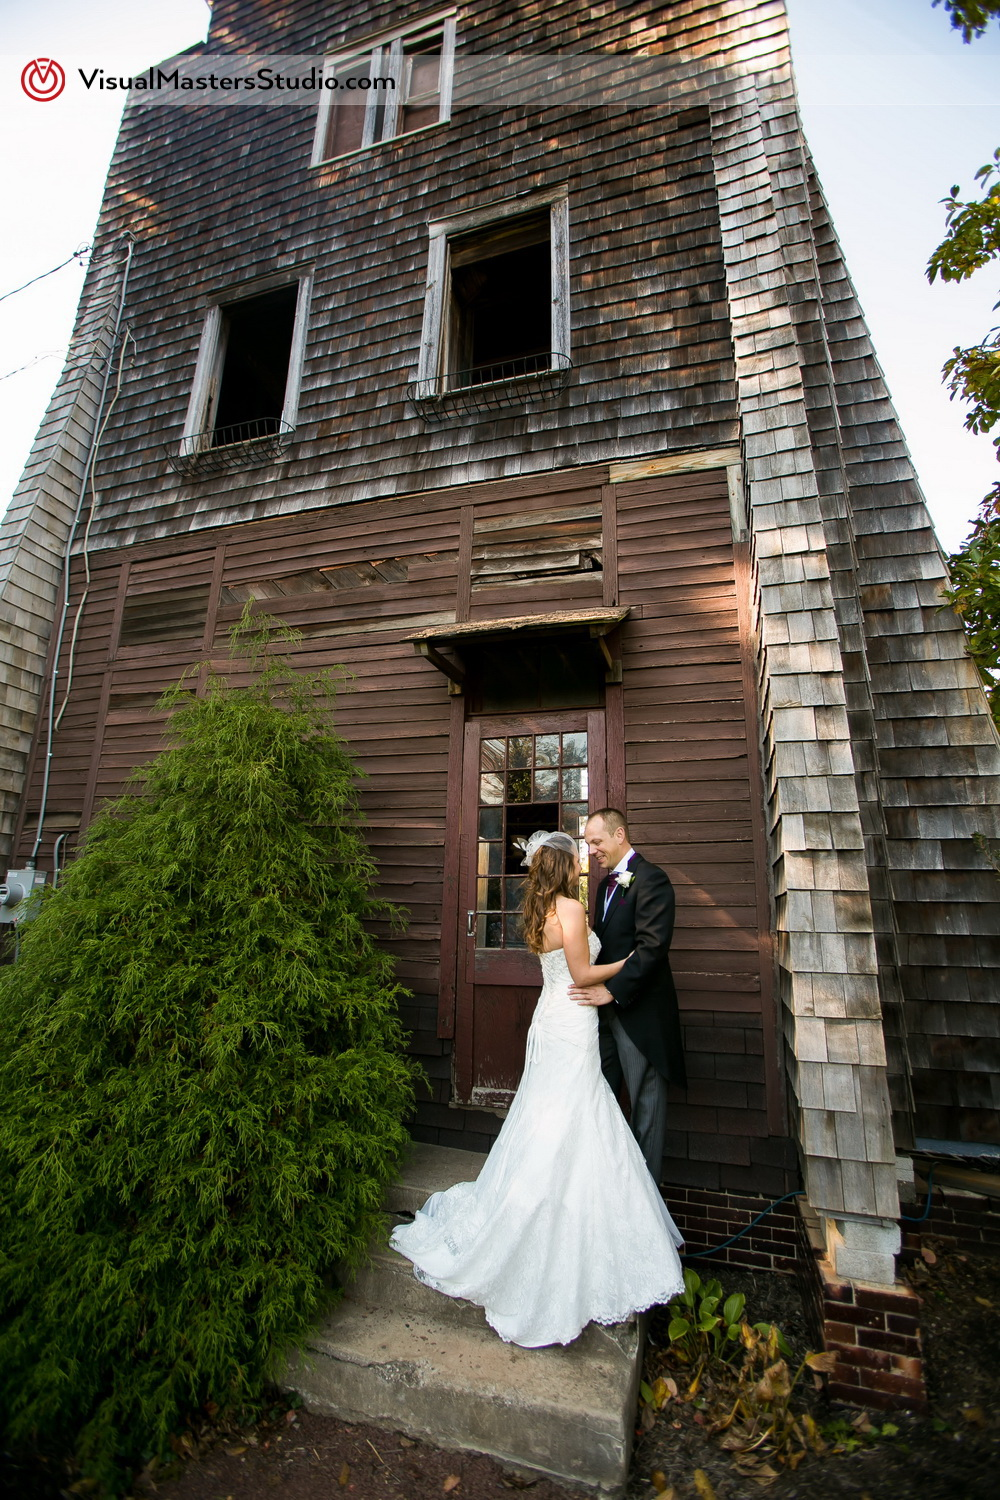 Rustic Cottage at The Inn at Fernbrook Farms by Visual Masters